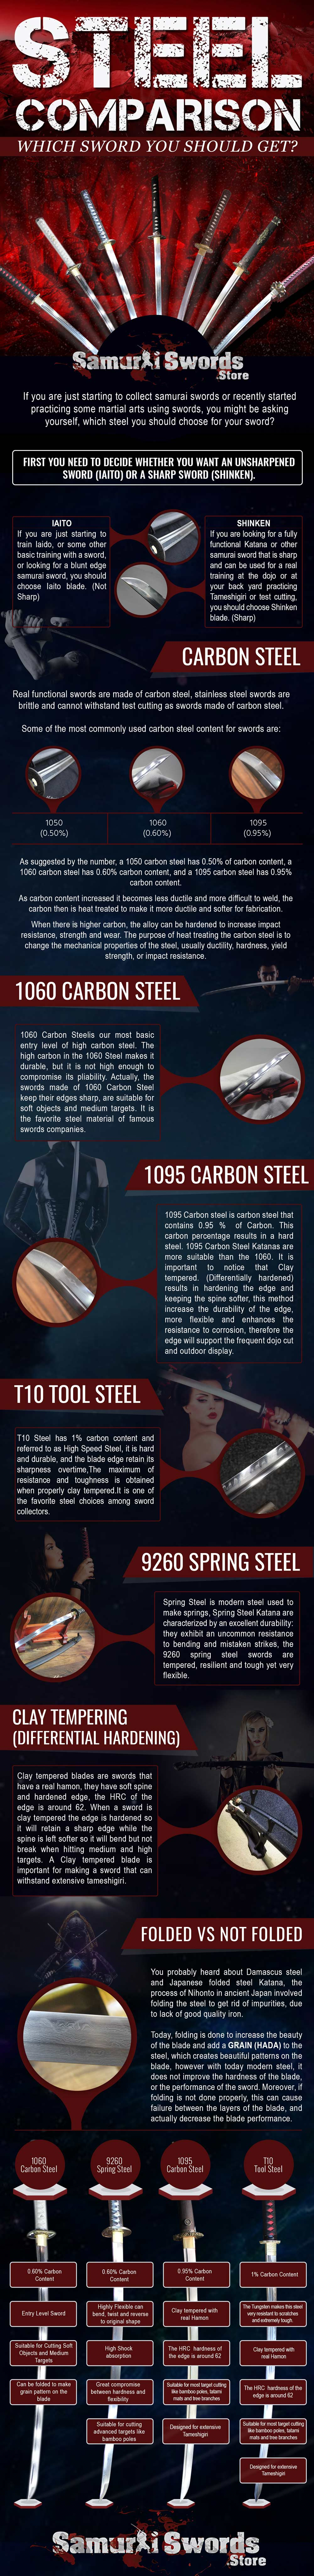 Different Samurai Steels: A Comparison - Infographic